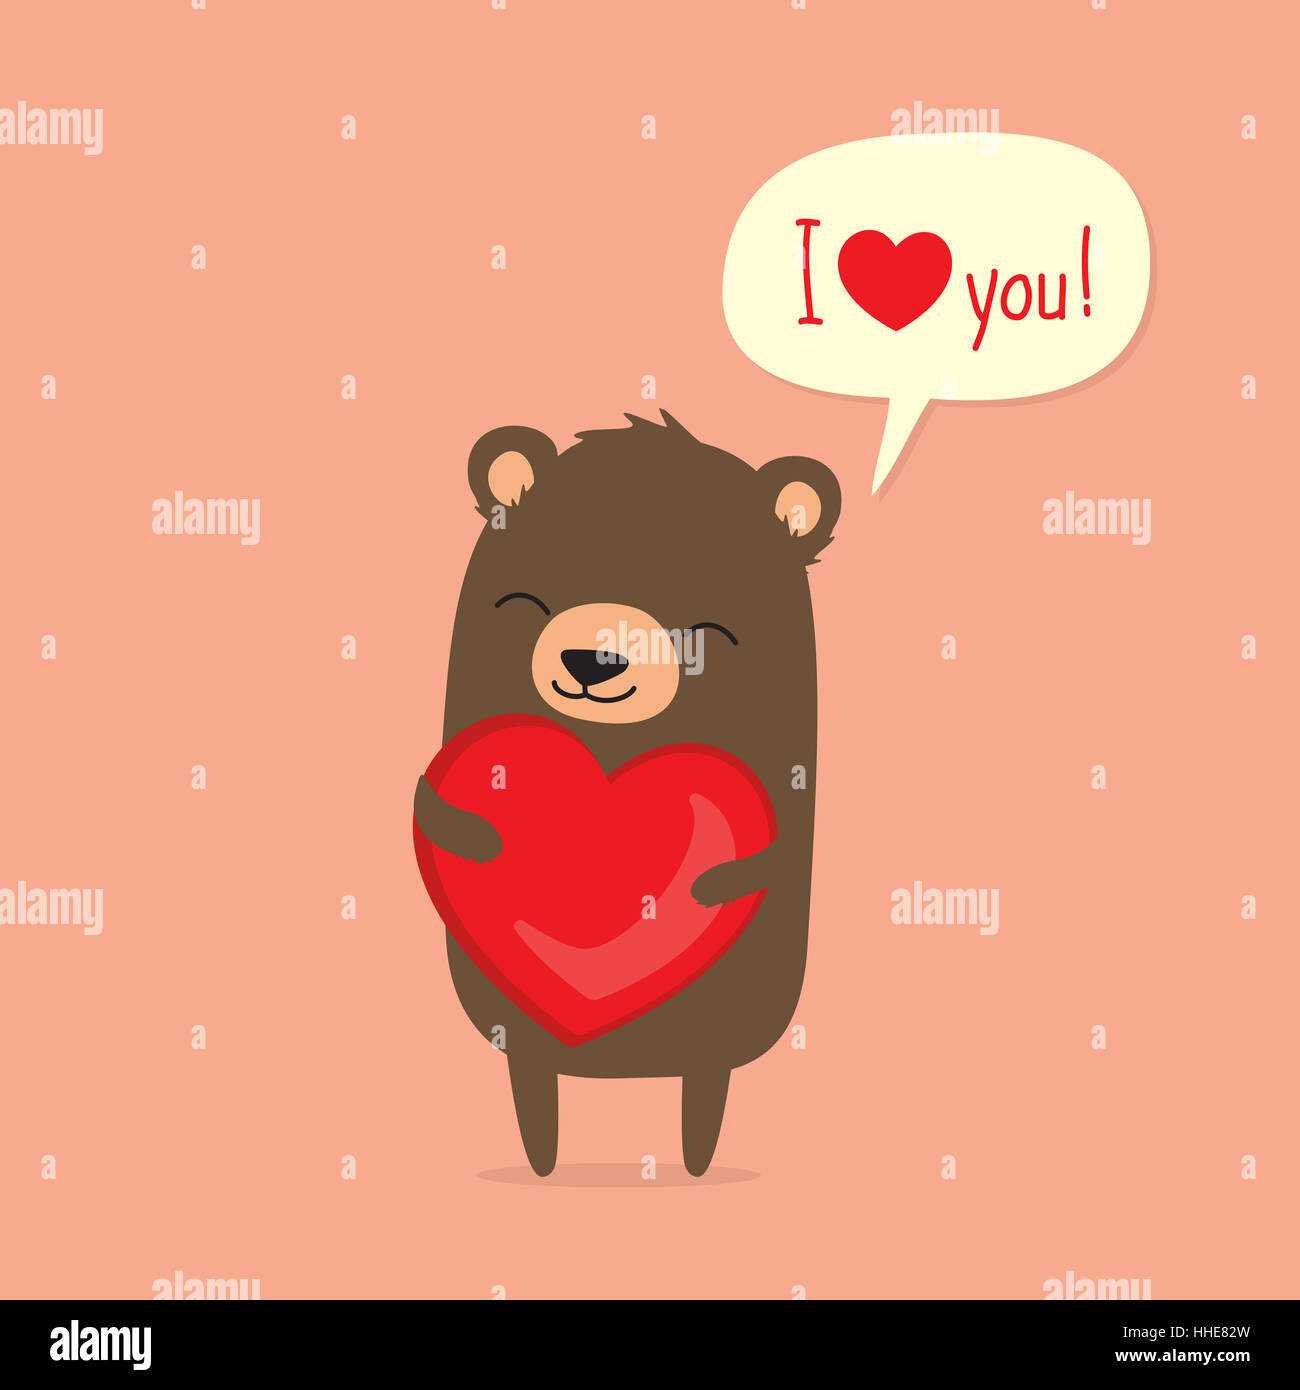 Cute Cartoon Saying I Love You